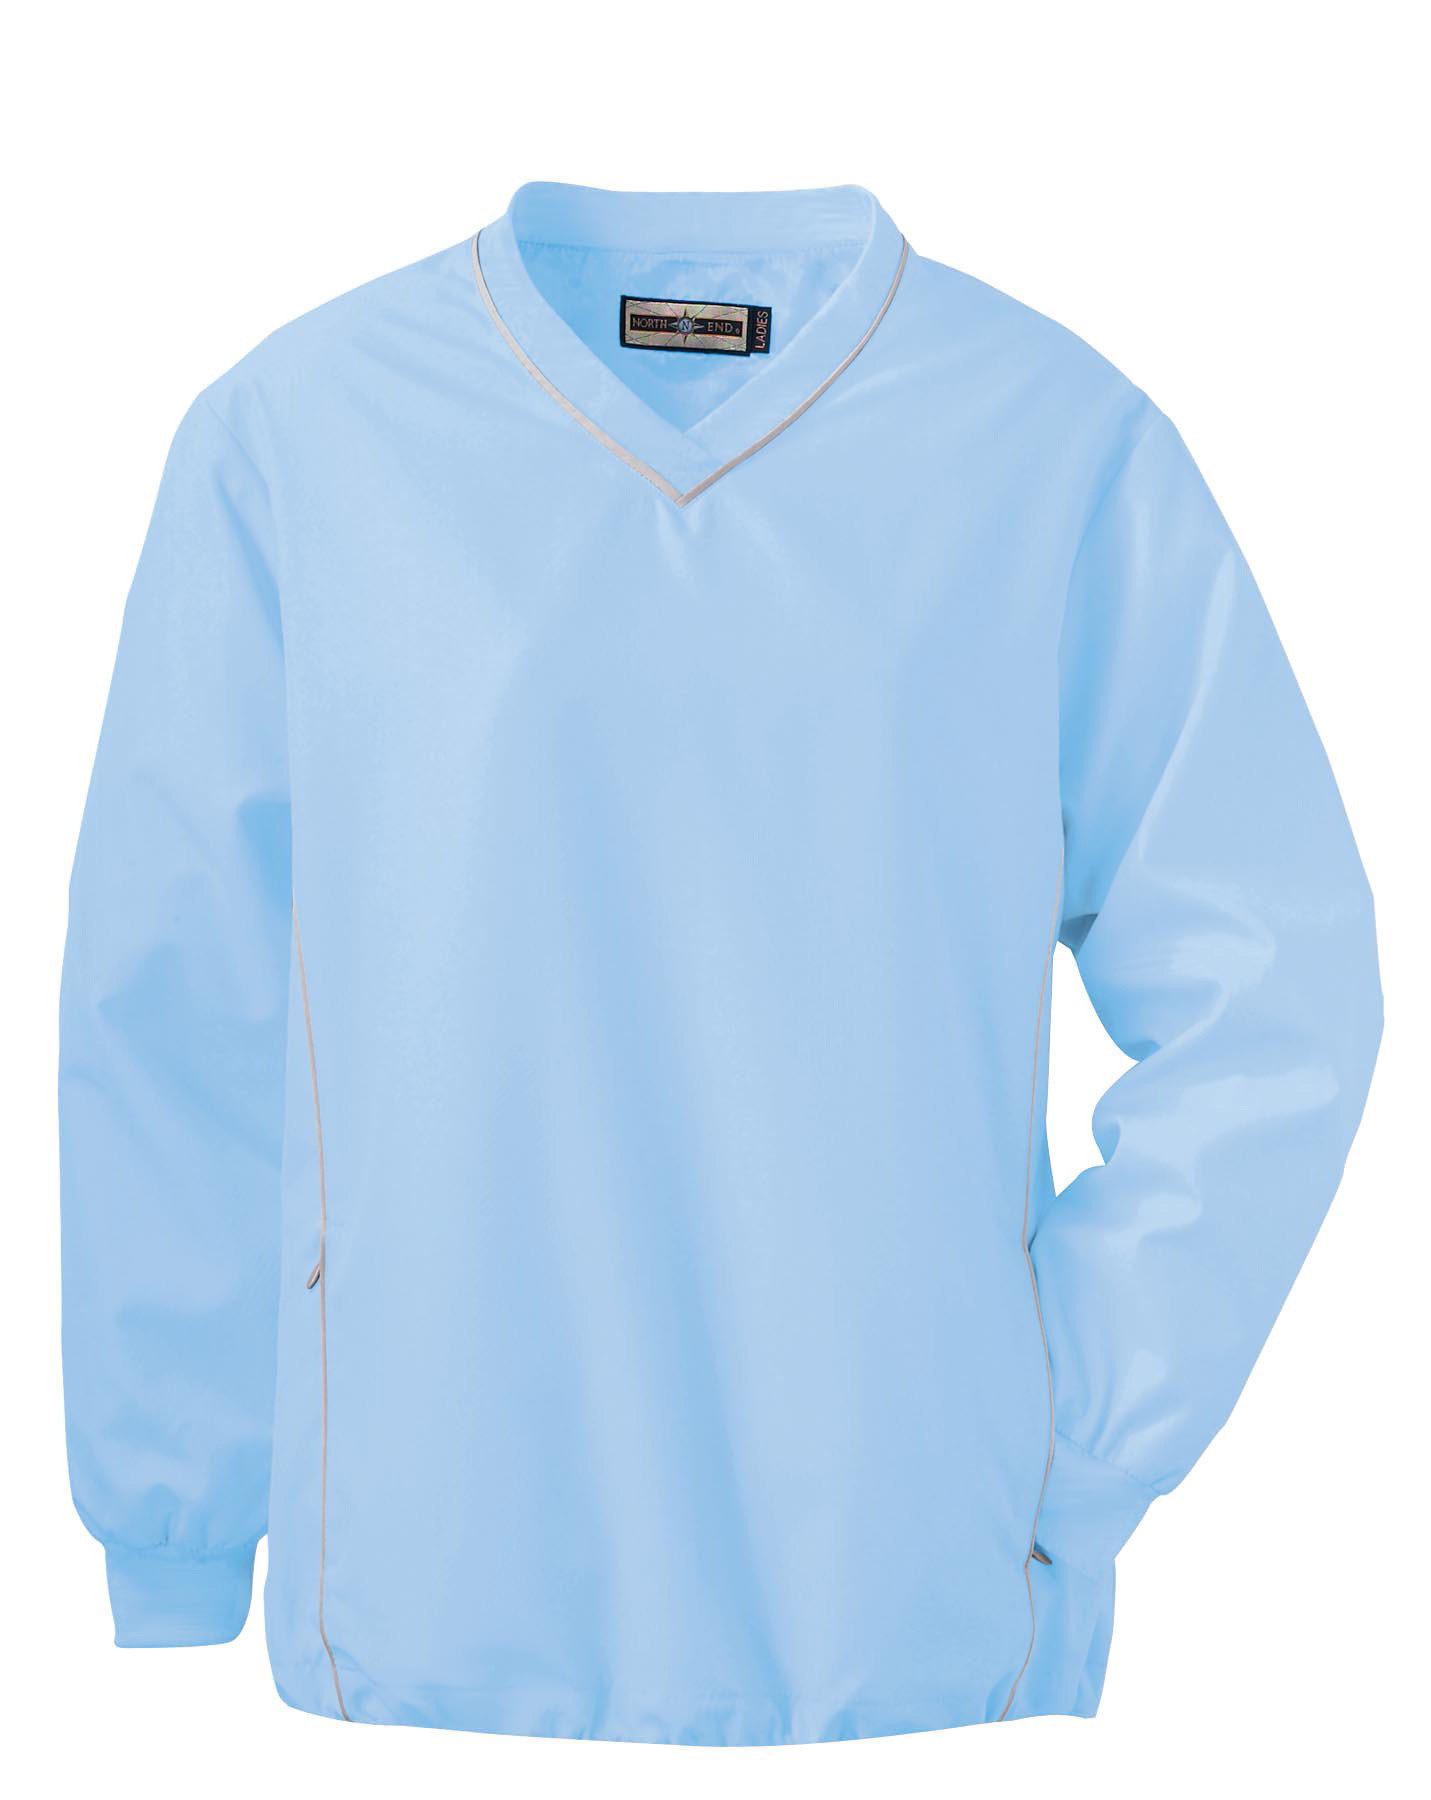 Ash City Windshirts 78023 - Ladies' Micro Plus Windshirt ...